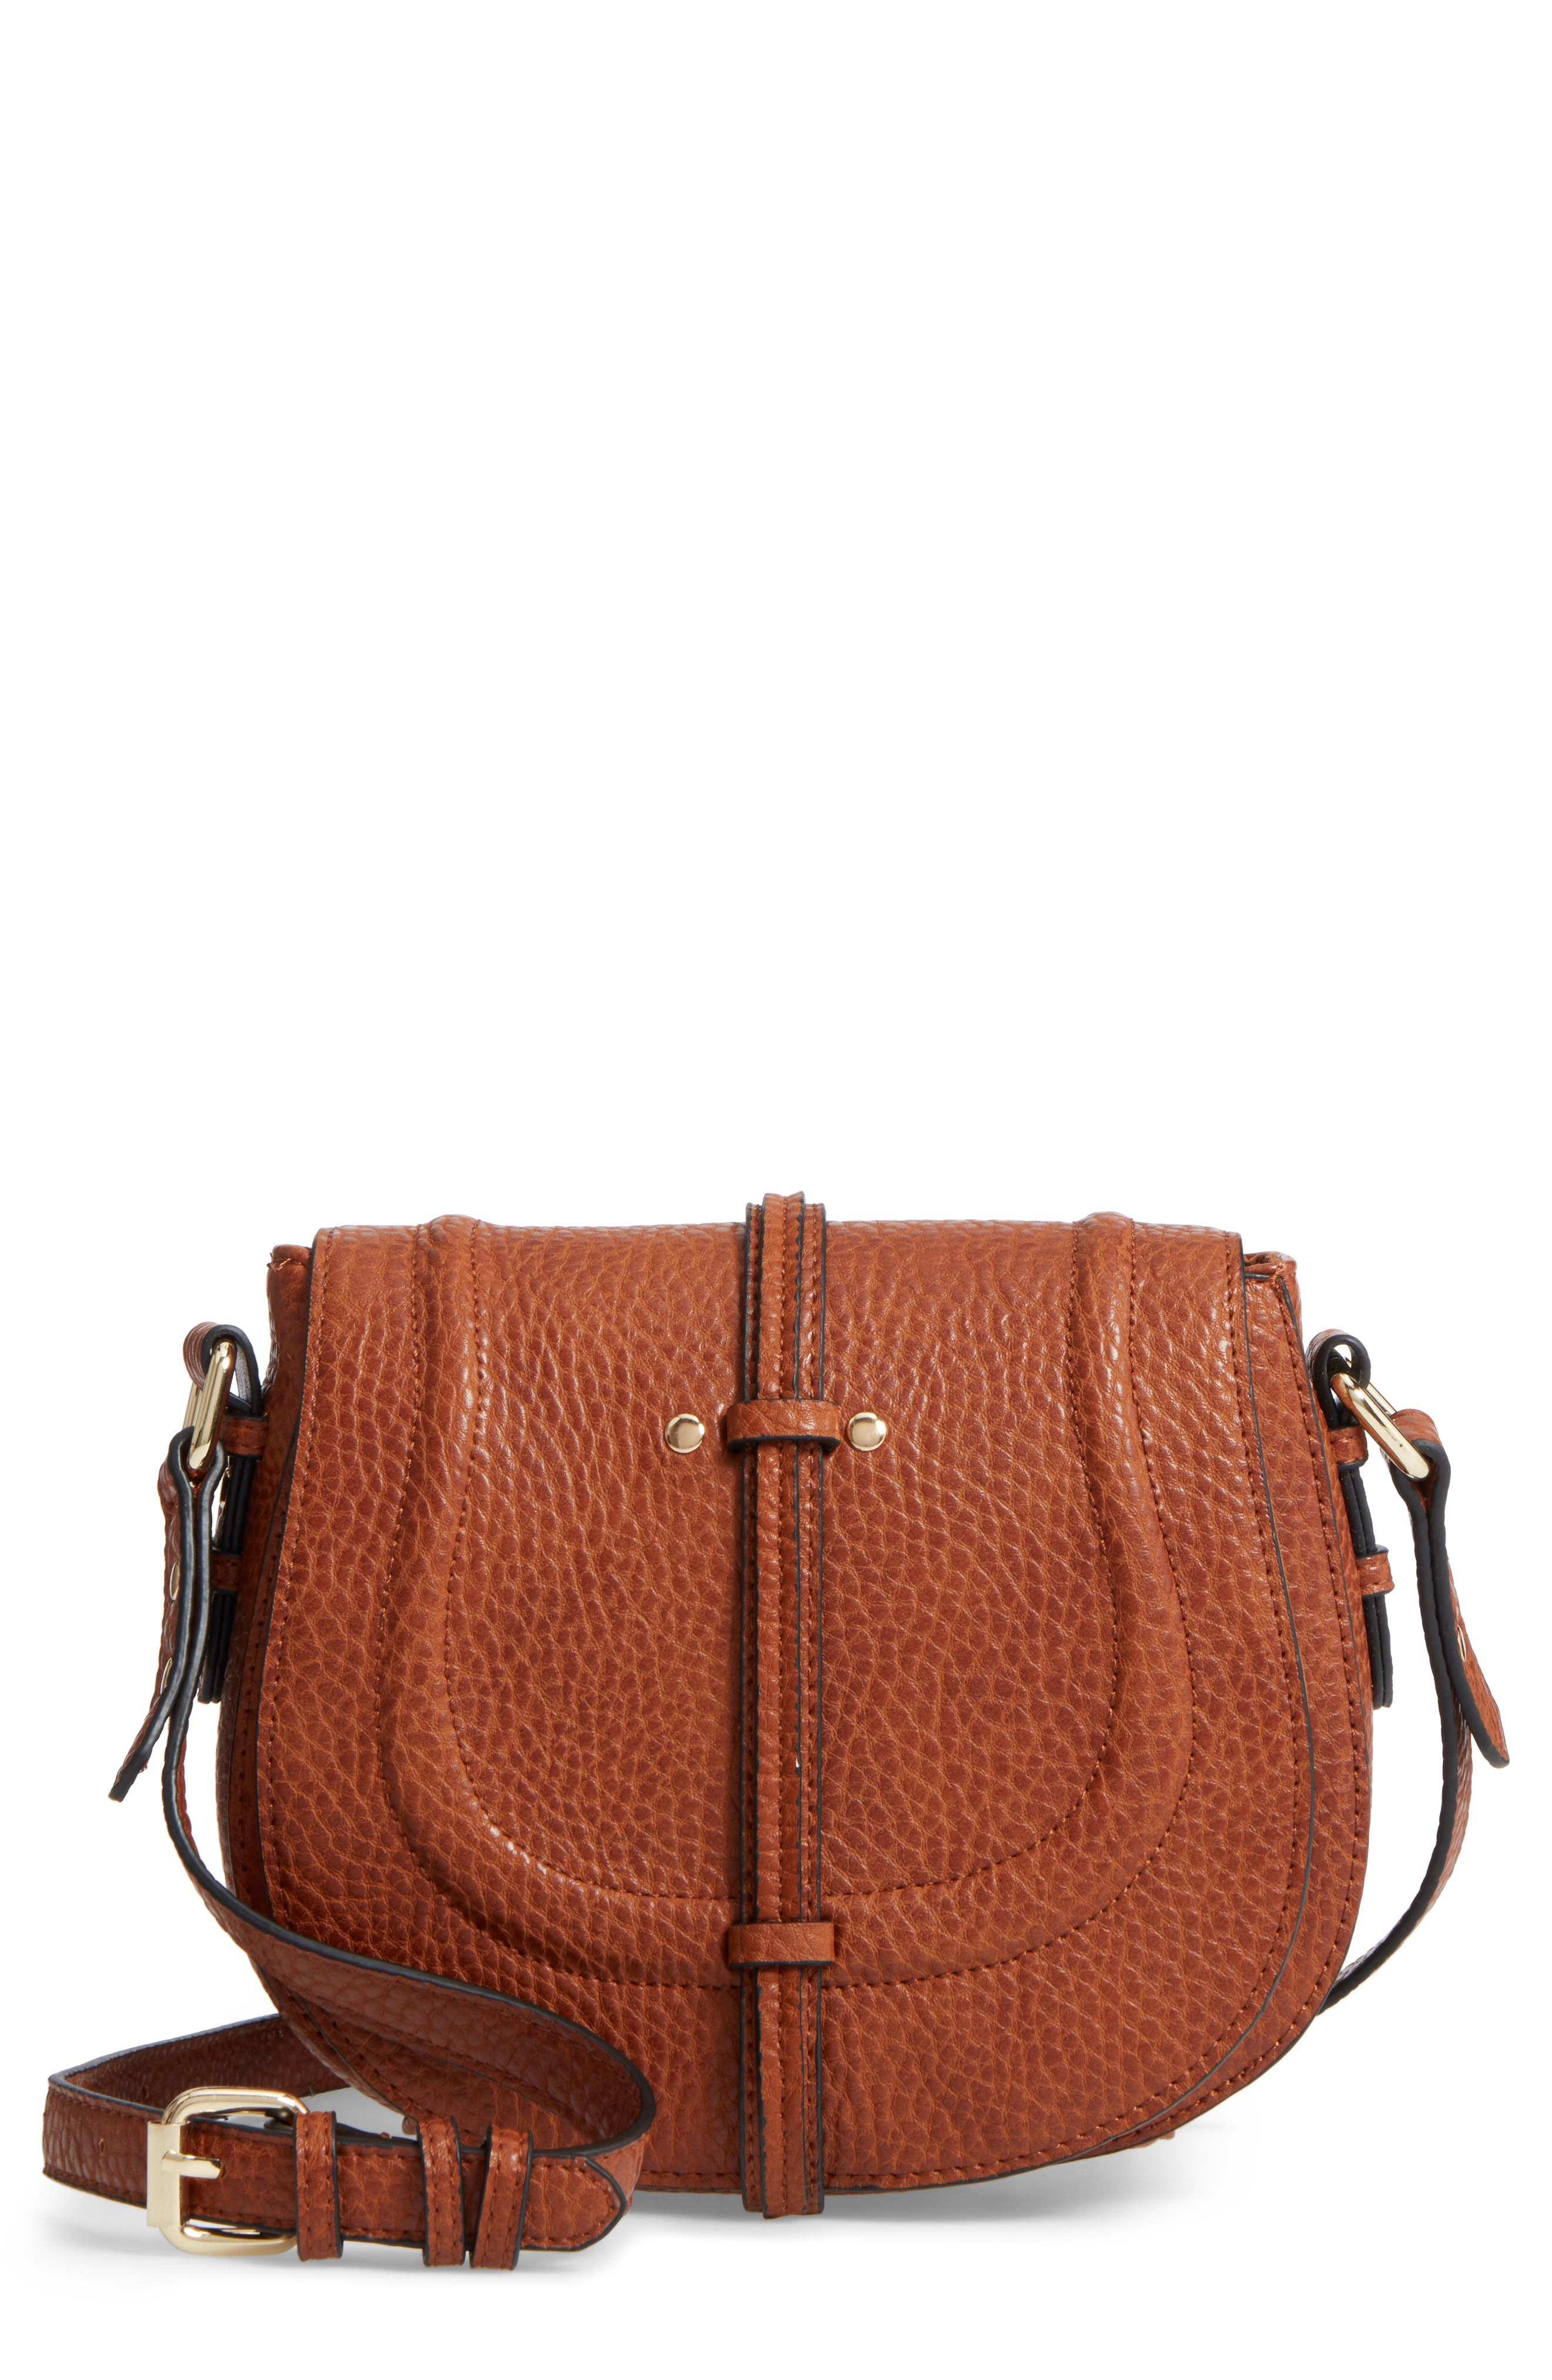 Linea Pelle Classic Faux Leather Saddle Bag